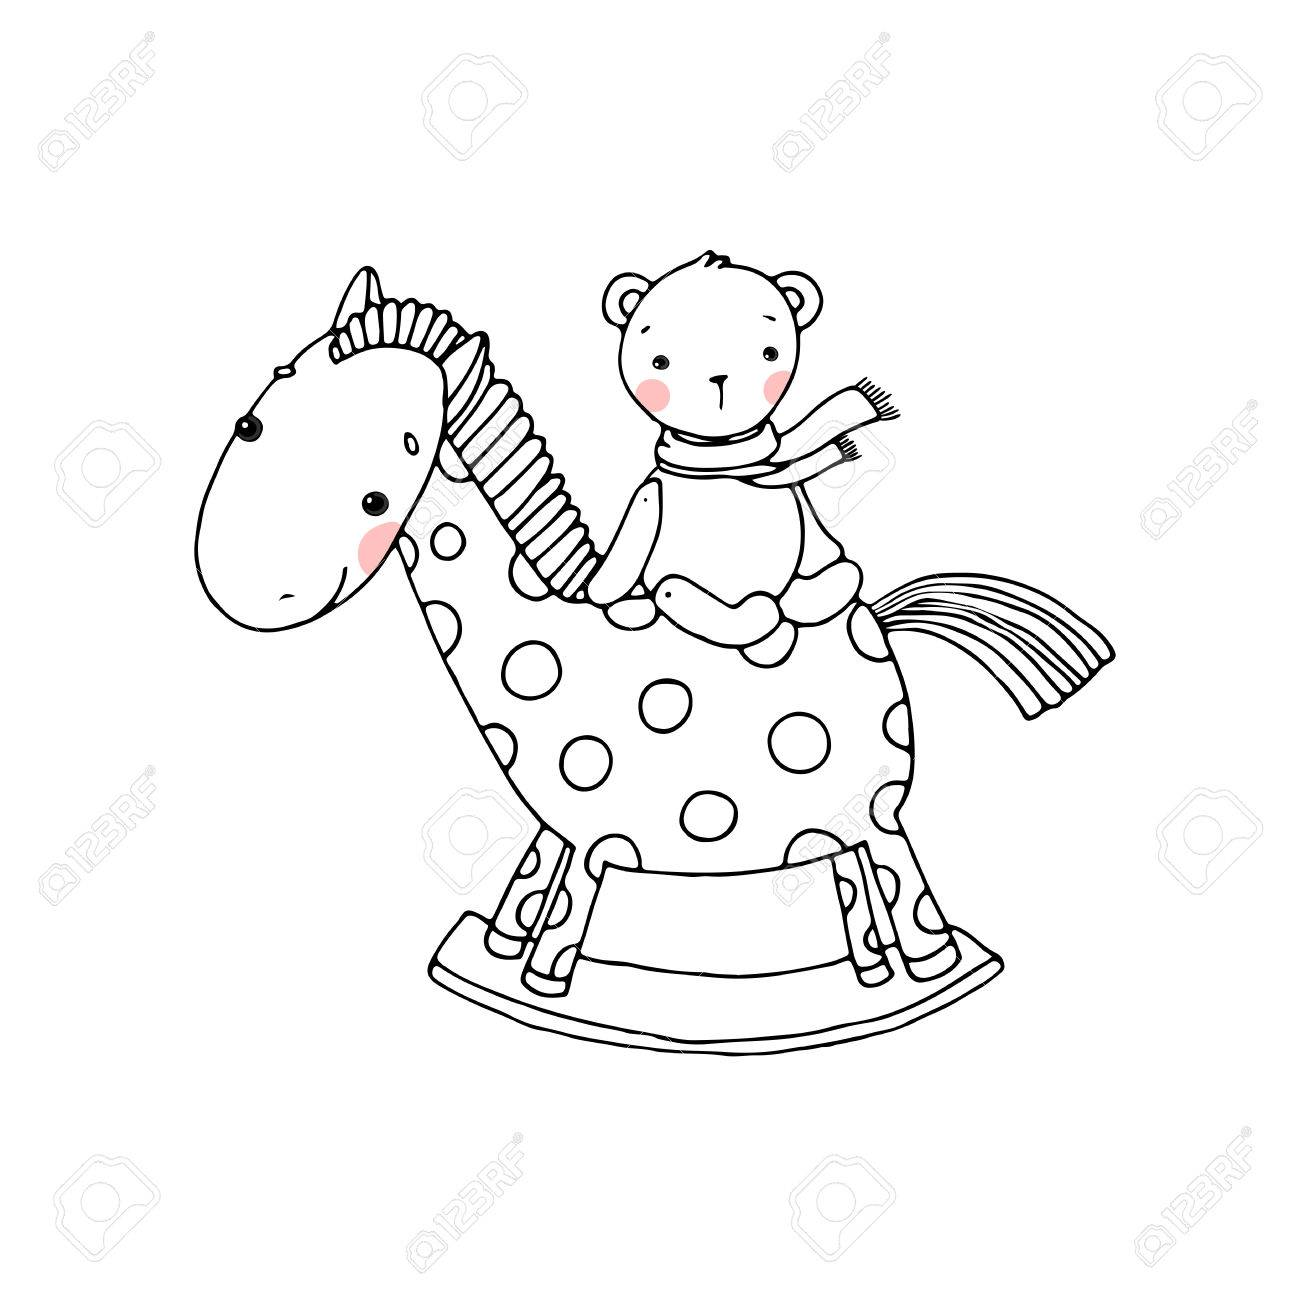 Horse And Bear Kids Toys Hand Drawn Vector Illustration On Royalty Free Cliparts Vectors And Stock Illustration Image 58911056